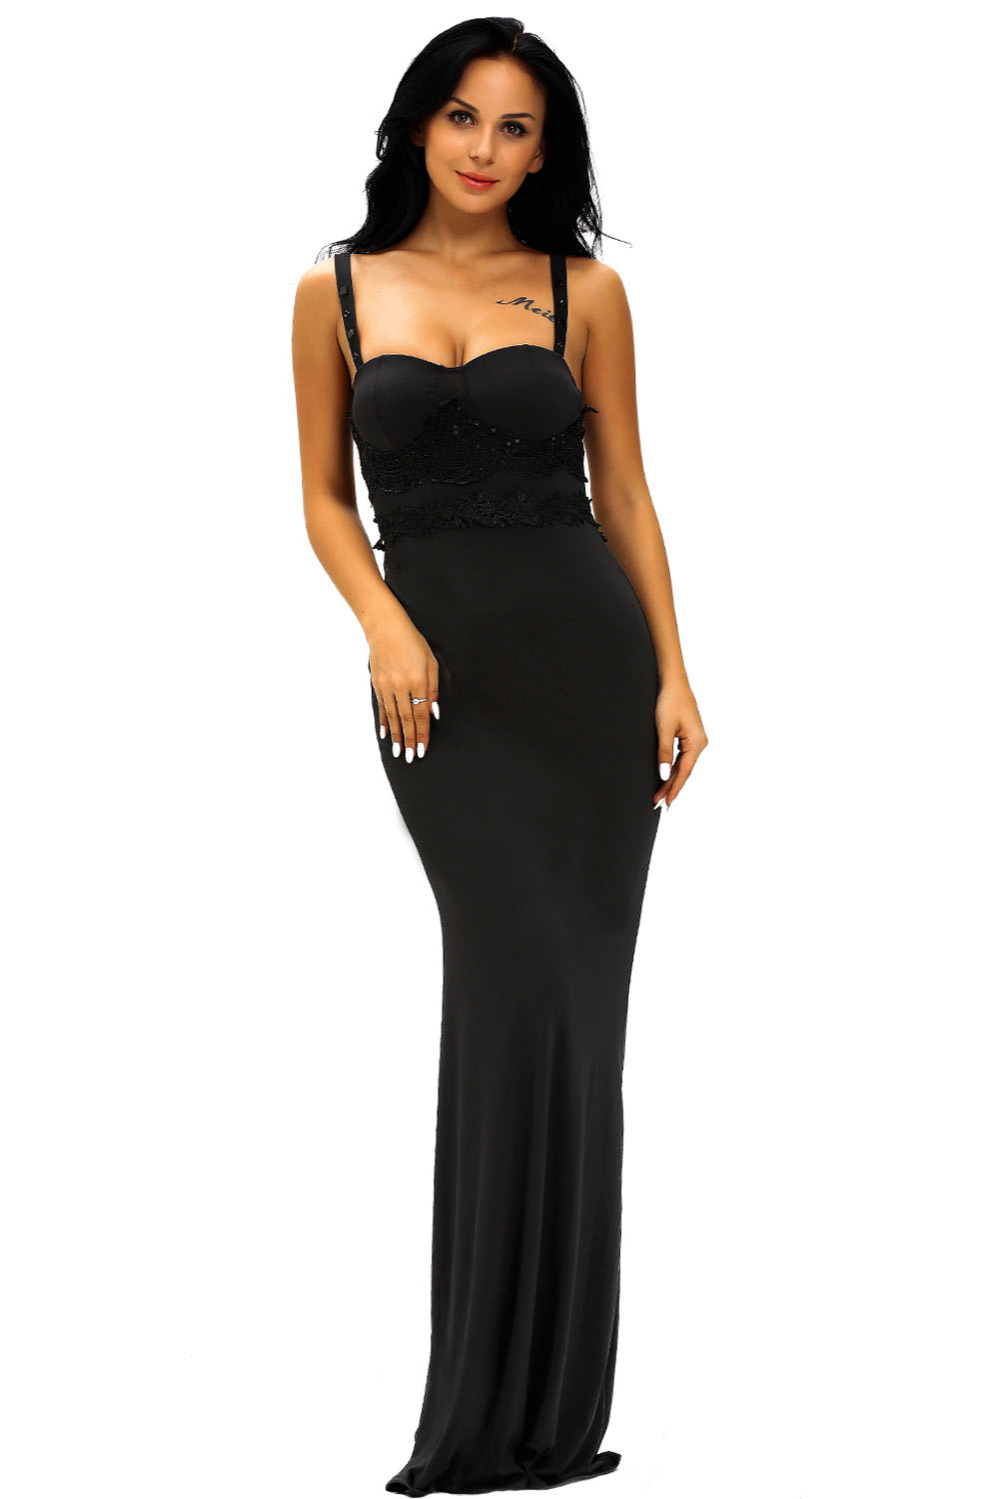 Black dress for prom night - Night Club Wedding Formal Summer Backless Shoulder Straps Yellow Black Lace Detail Pink Long Prom Party Maxi Dress 61153 S M L